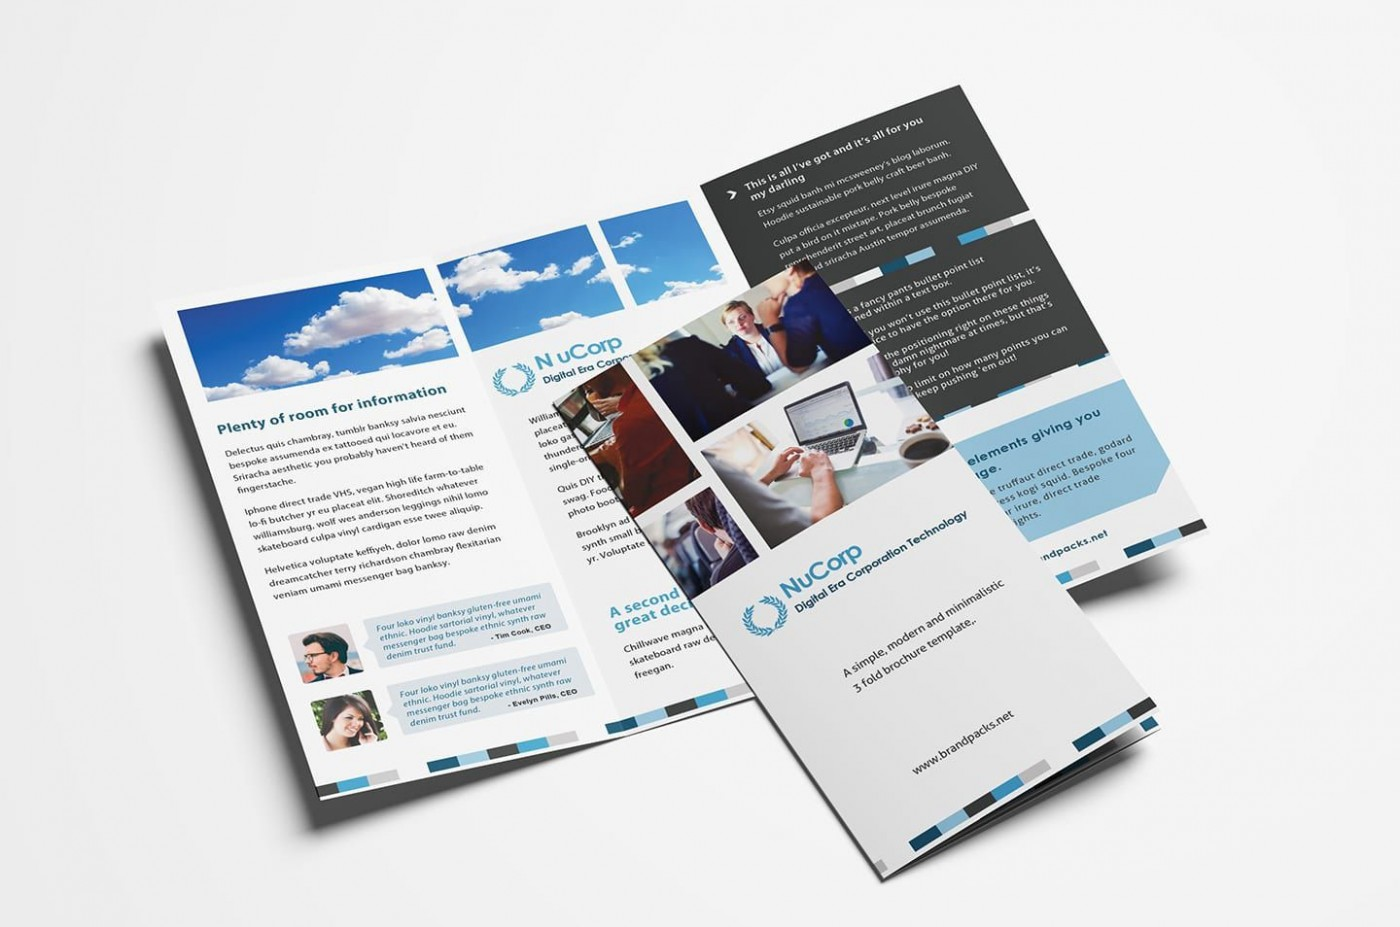 004 Awful 3 Fold Brochure Template Inspiration  For Free1400